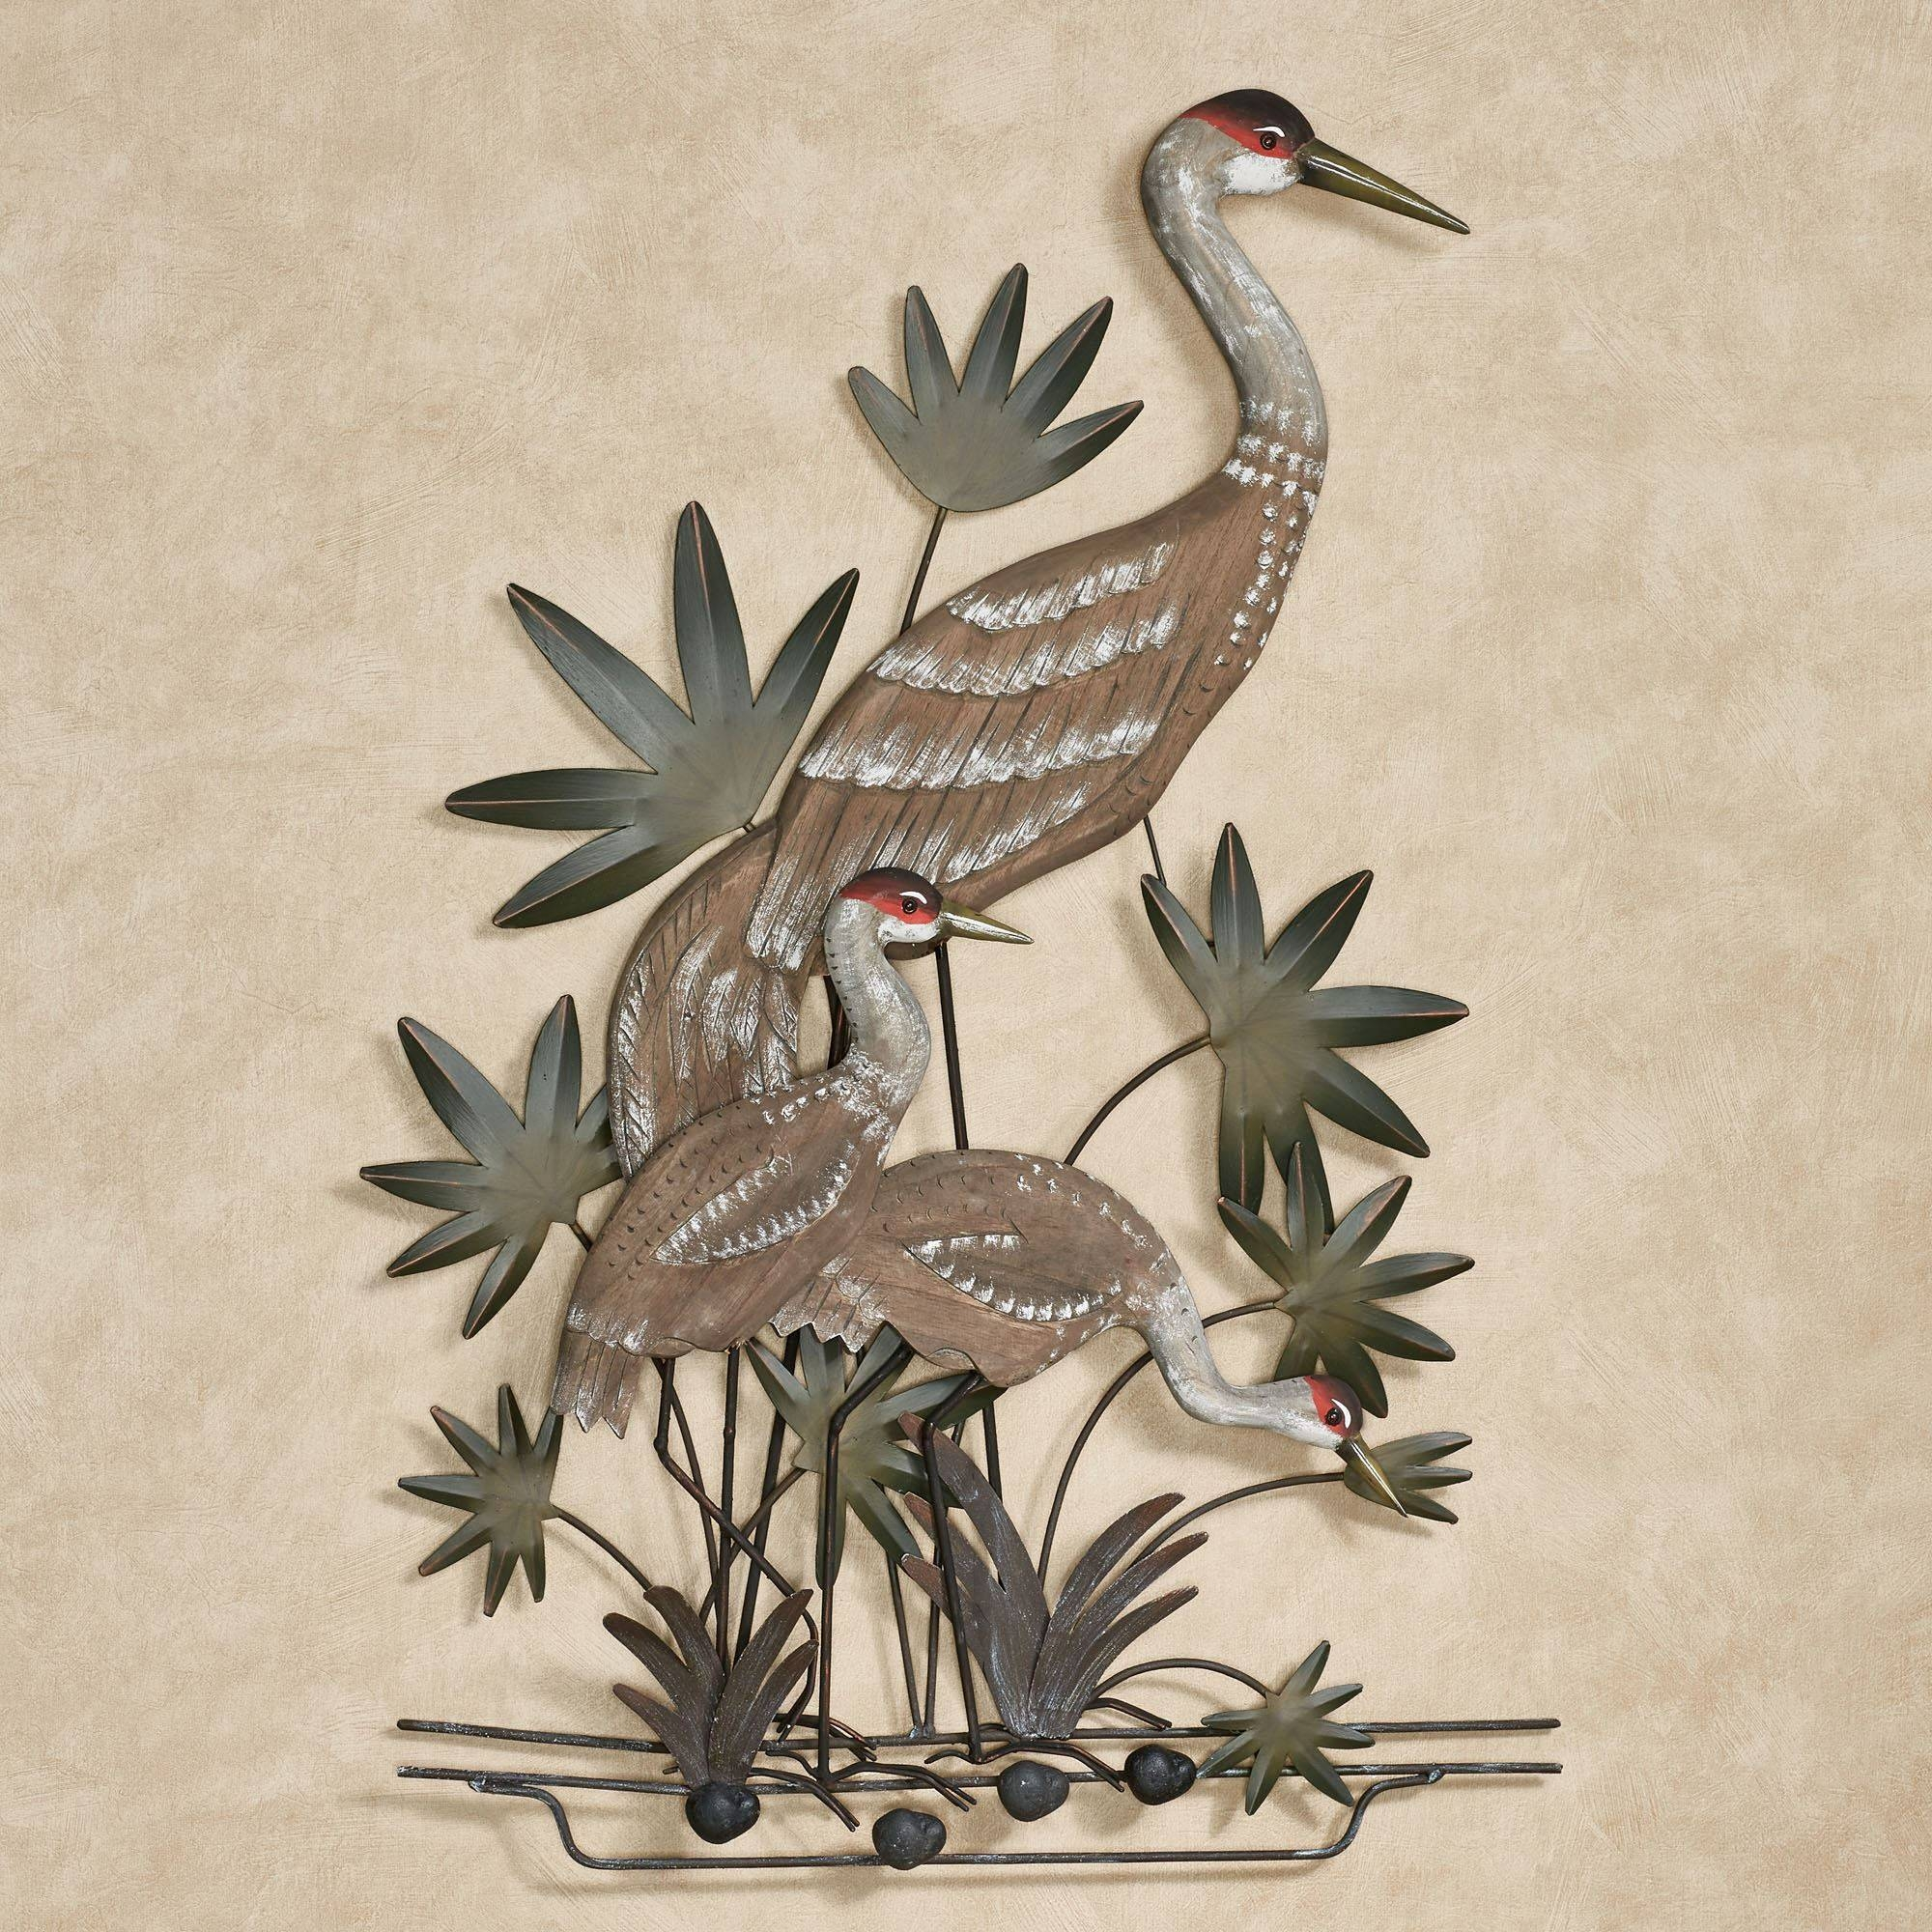 Animal Metal Wall Sculptures | Touch Of Class With Regard To Current Heron Metal Wall Art (View 1 of 20)